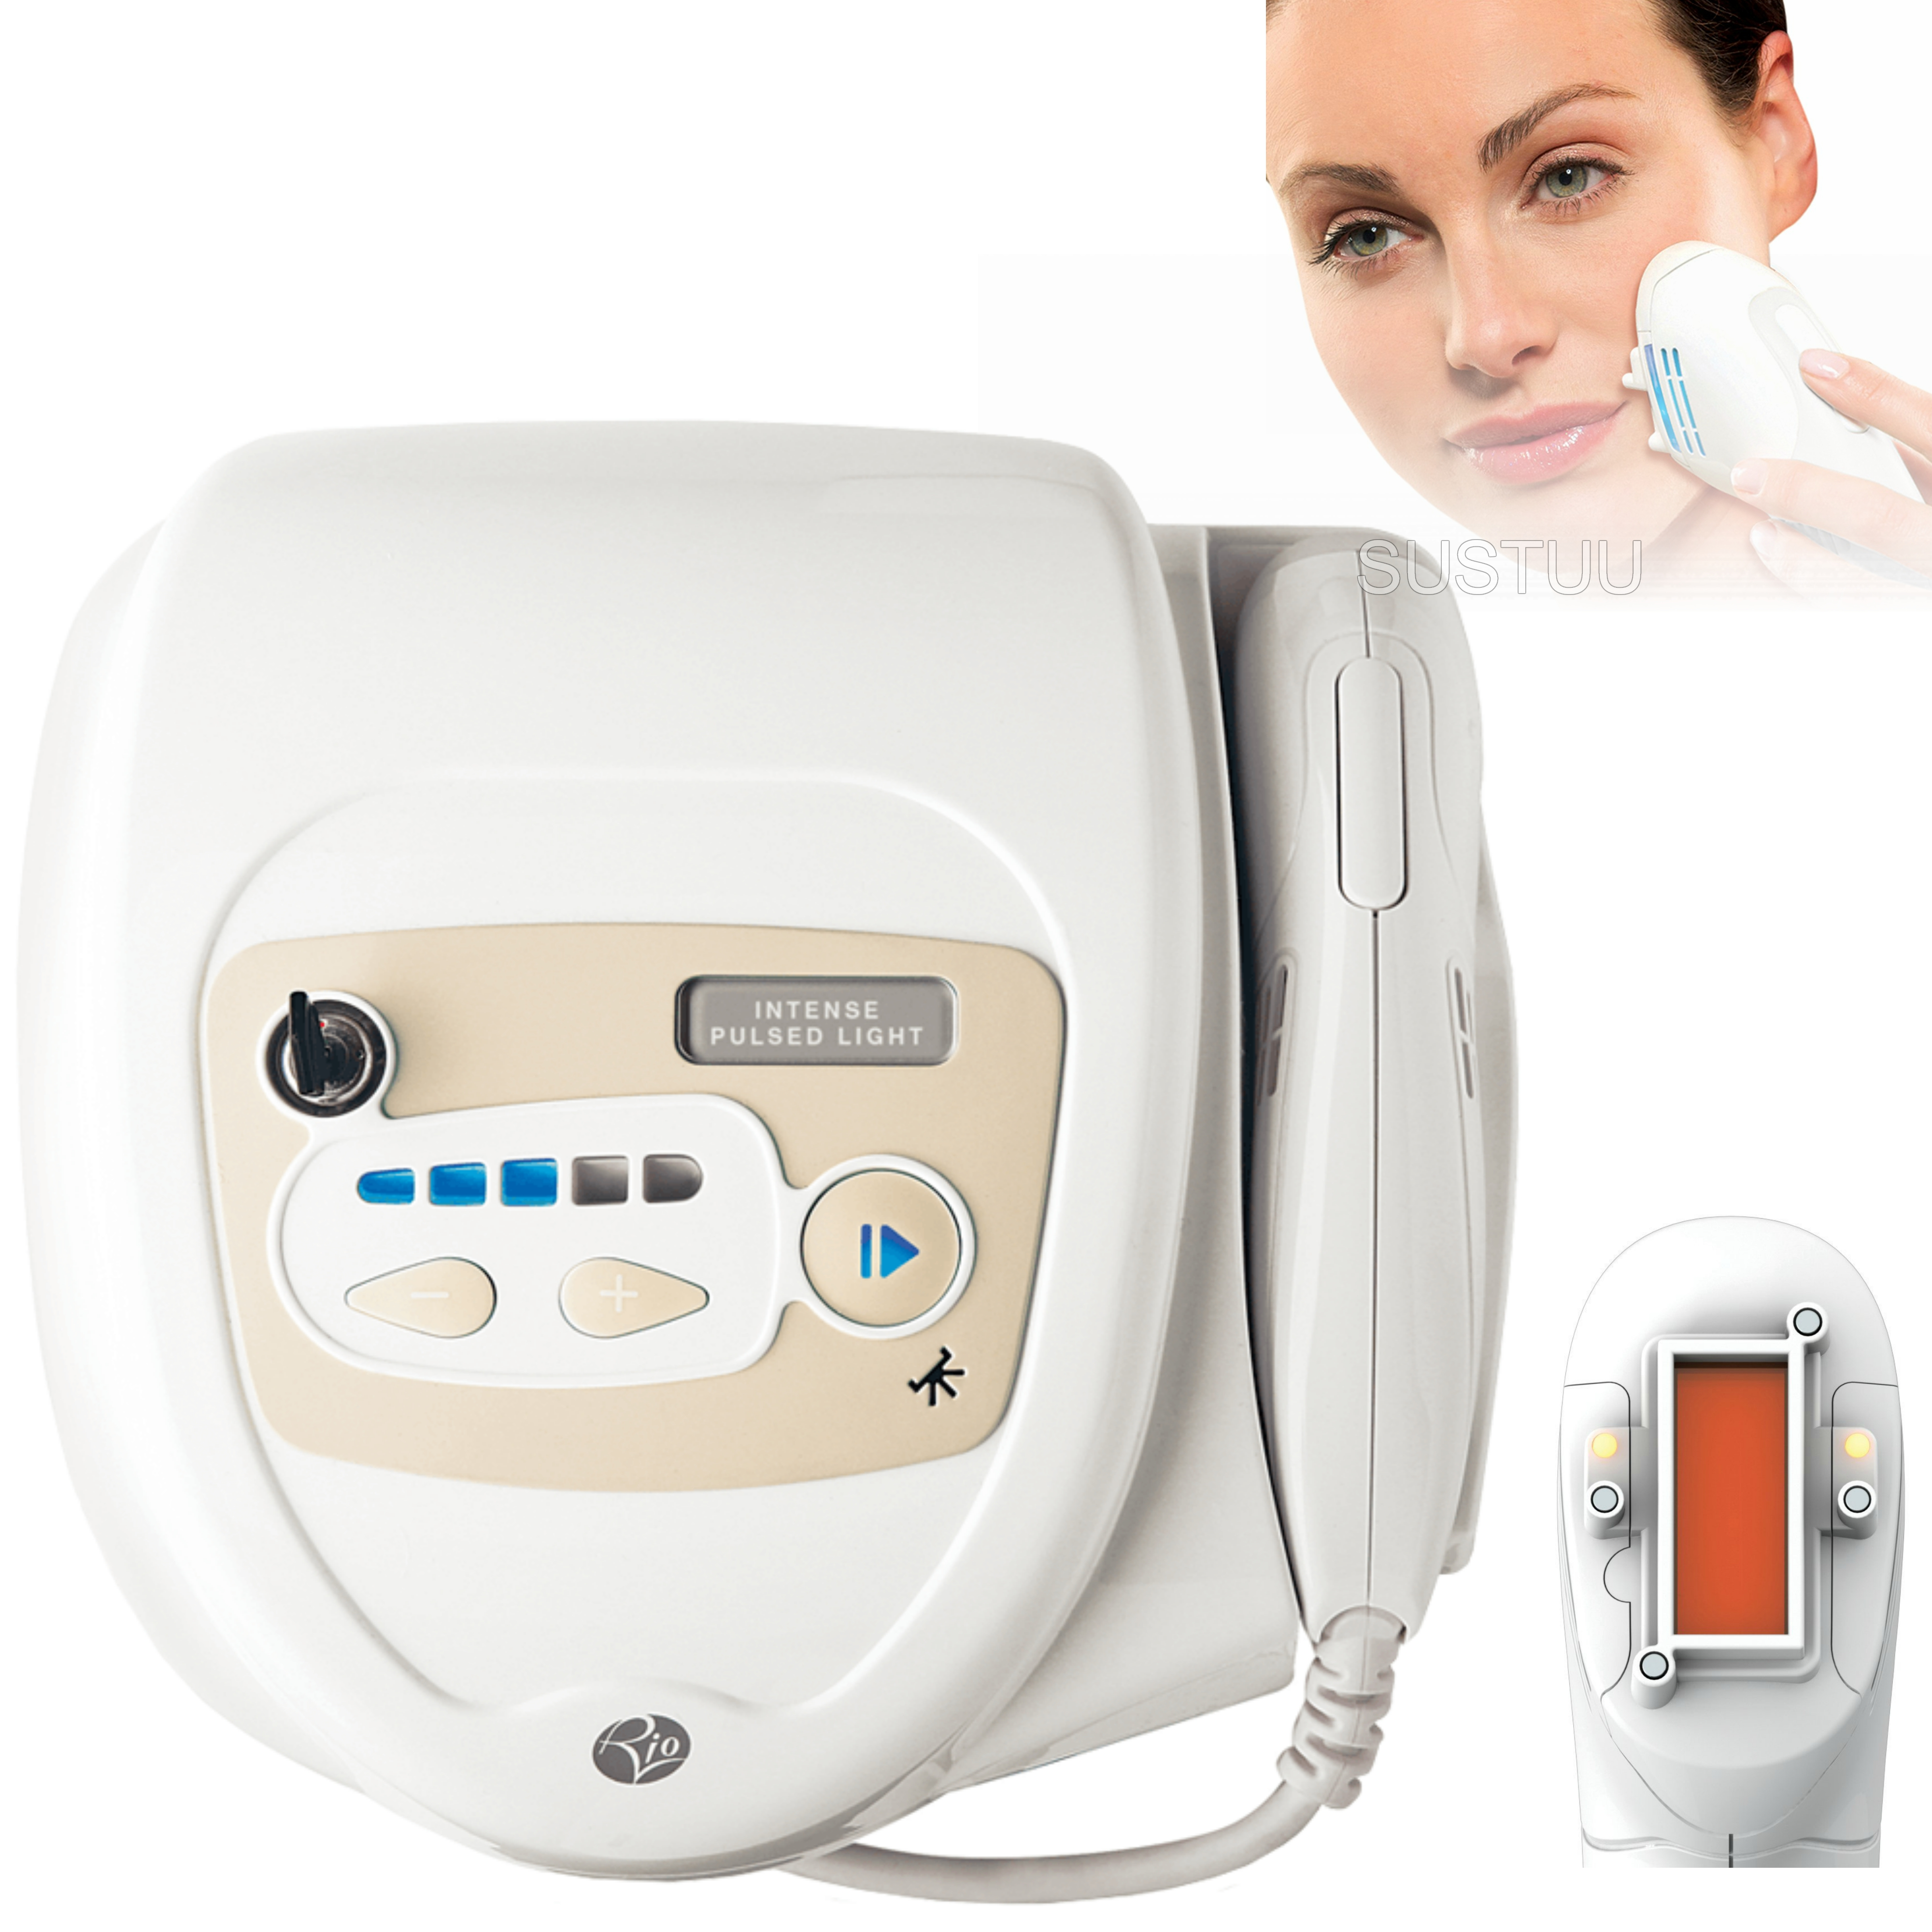 Rio IPL8000 Hair Removal System | Permanent Hair Reduction | 150,000 Flashes | RIOIPHR